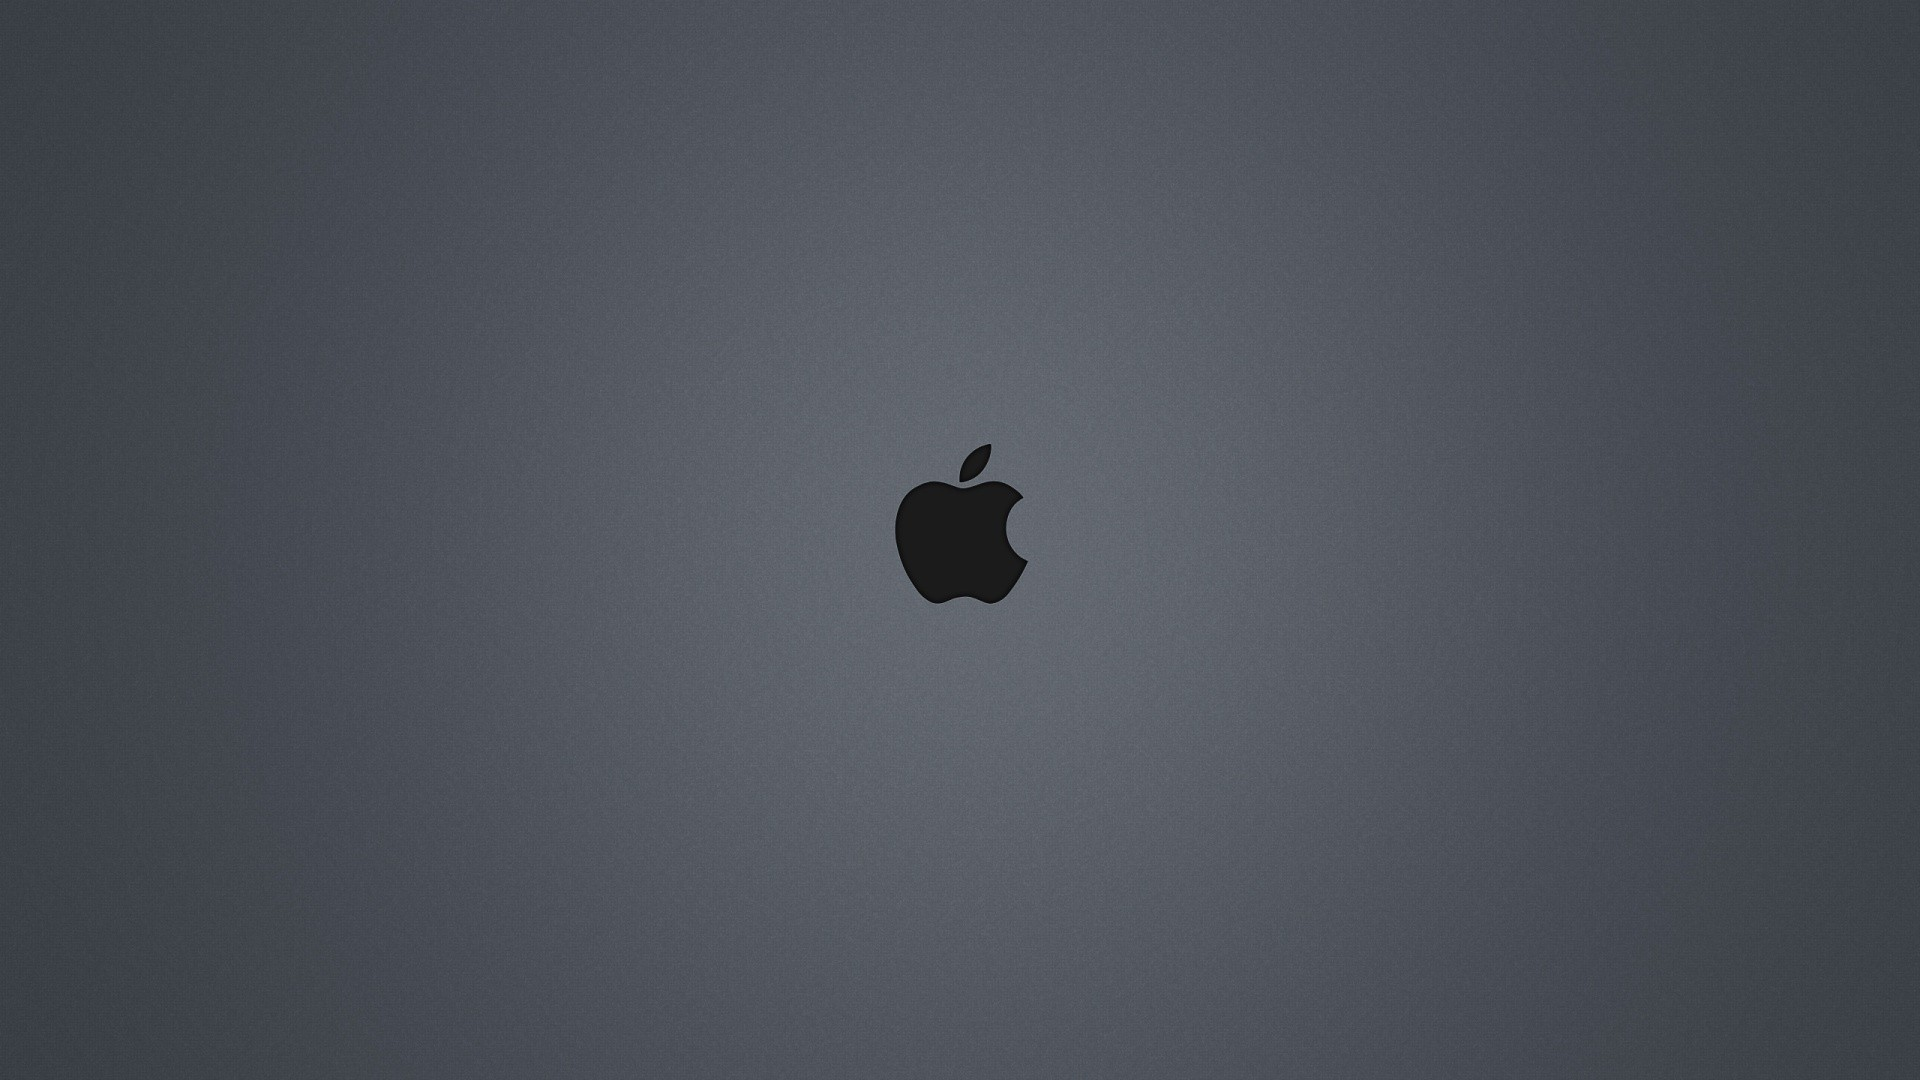 wallpapers for apple computers (72+ background pictures)